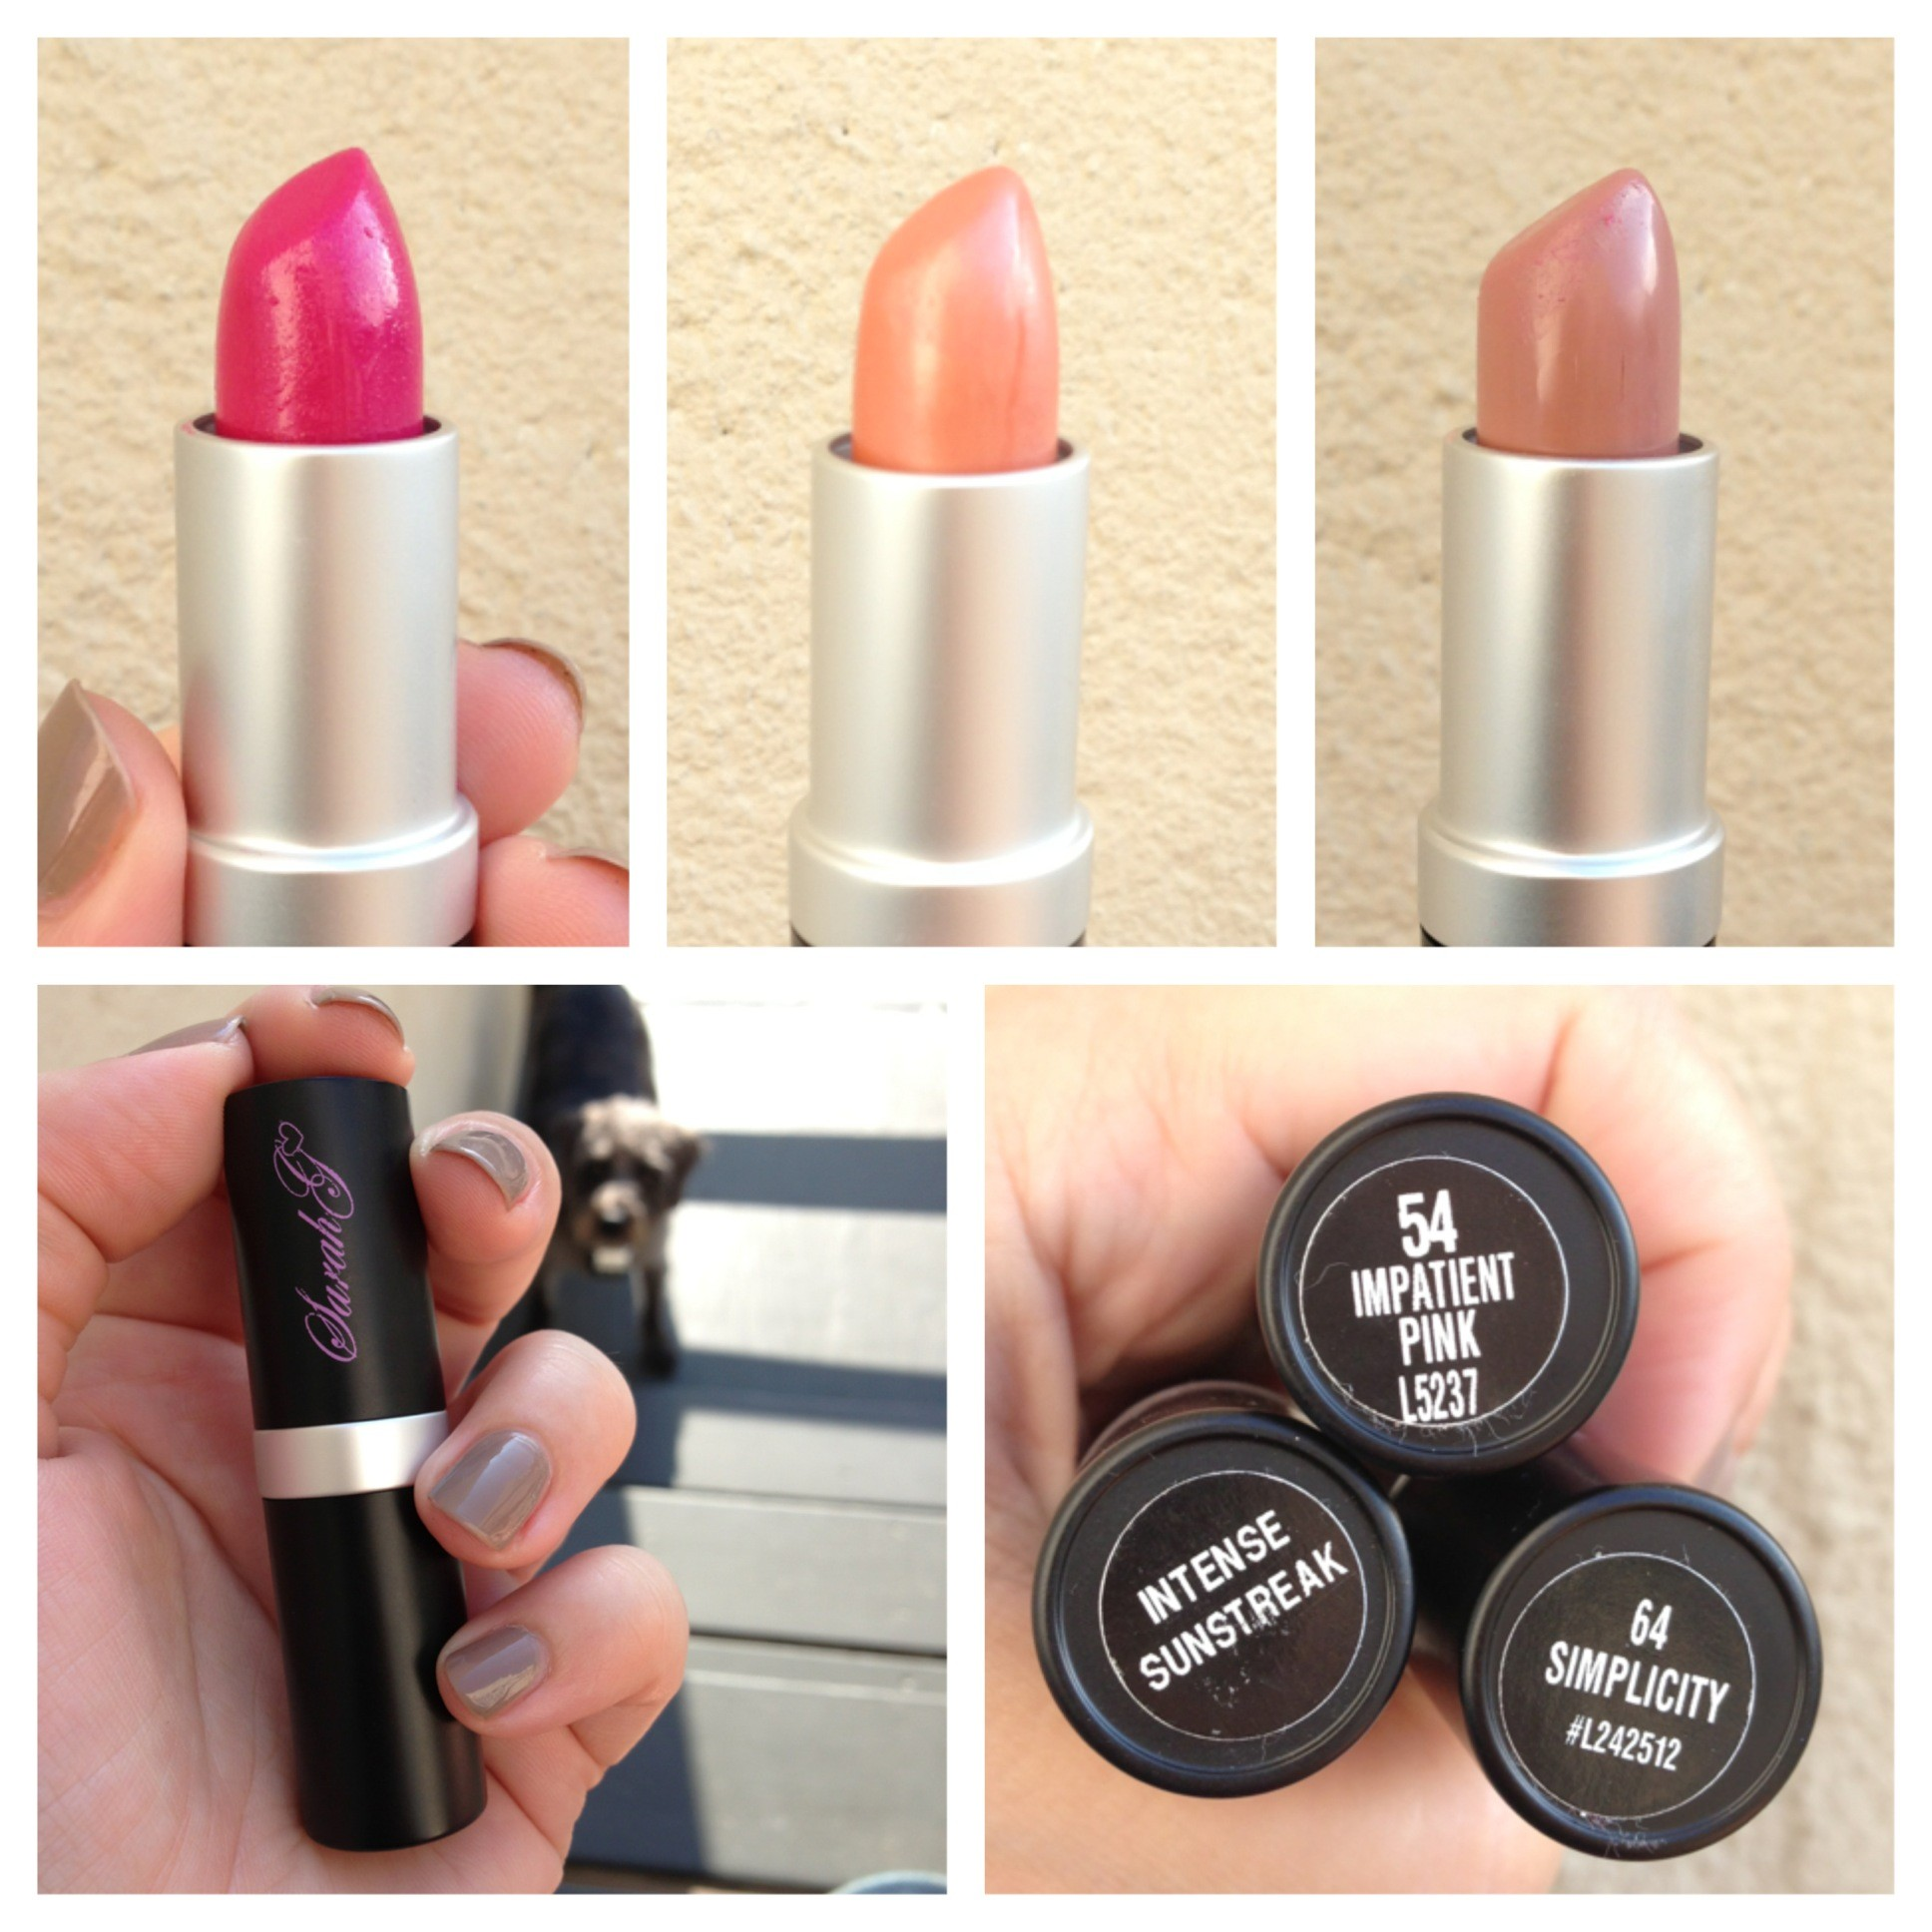 Sarah G Lipstick Review